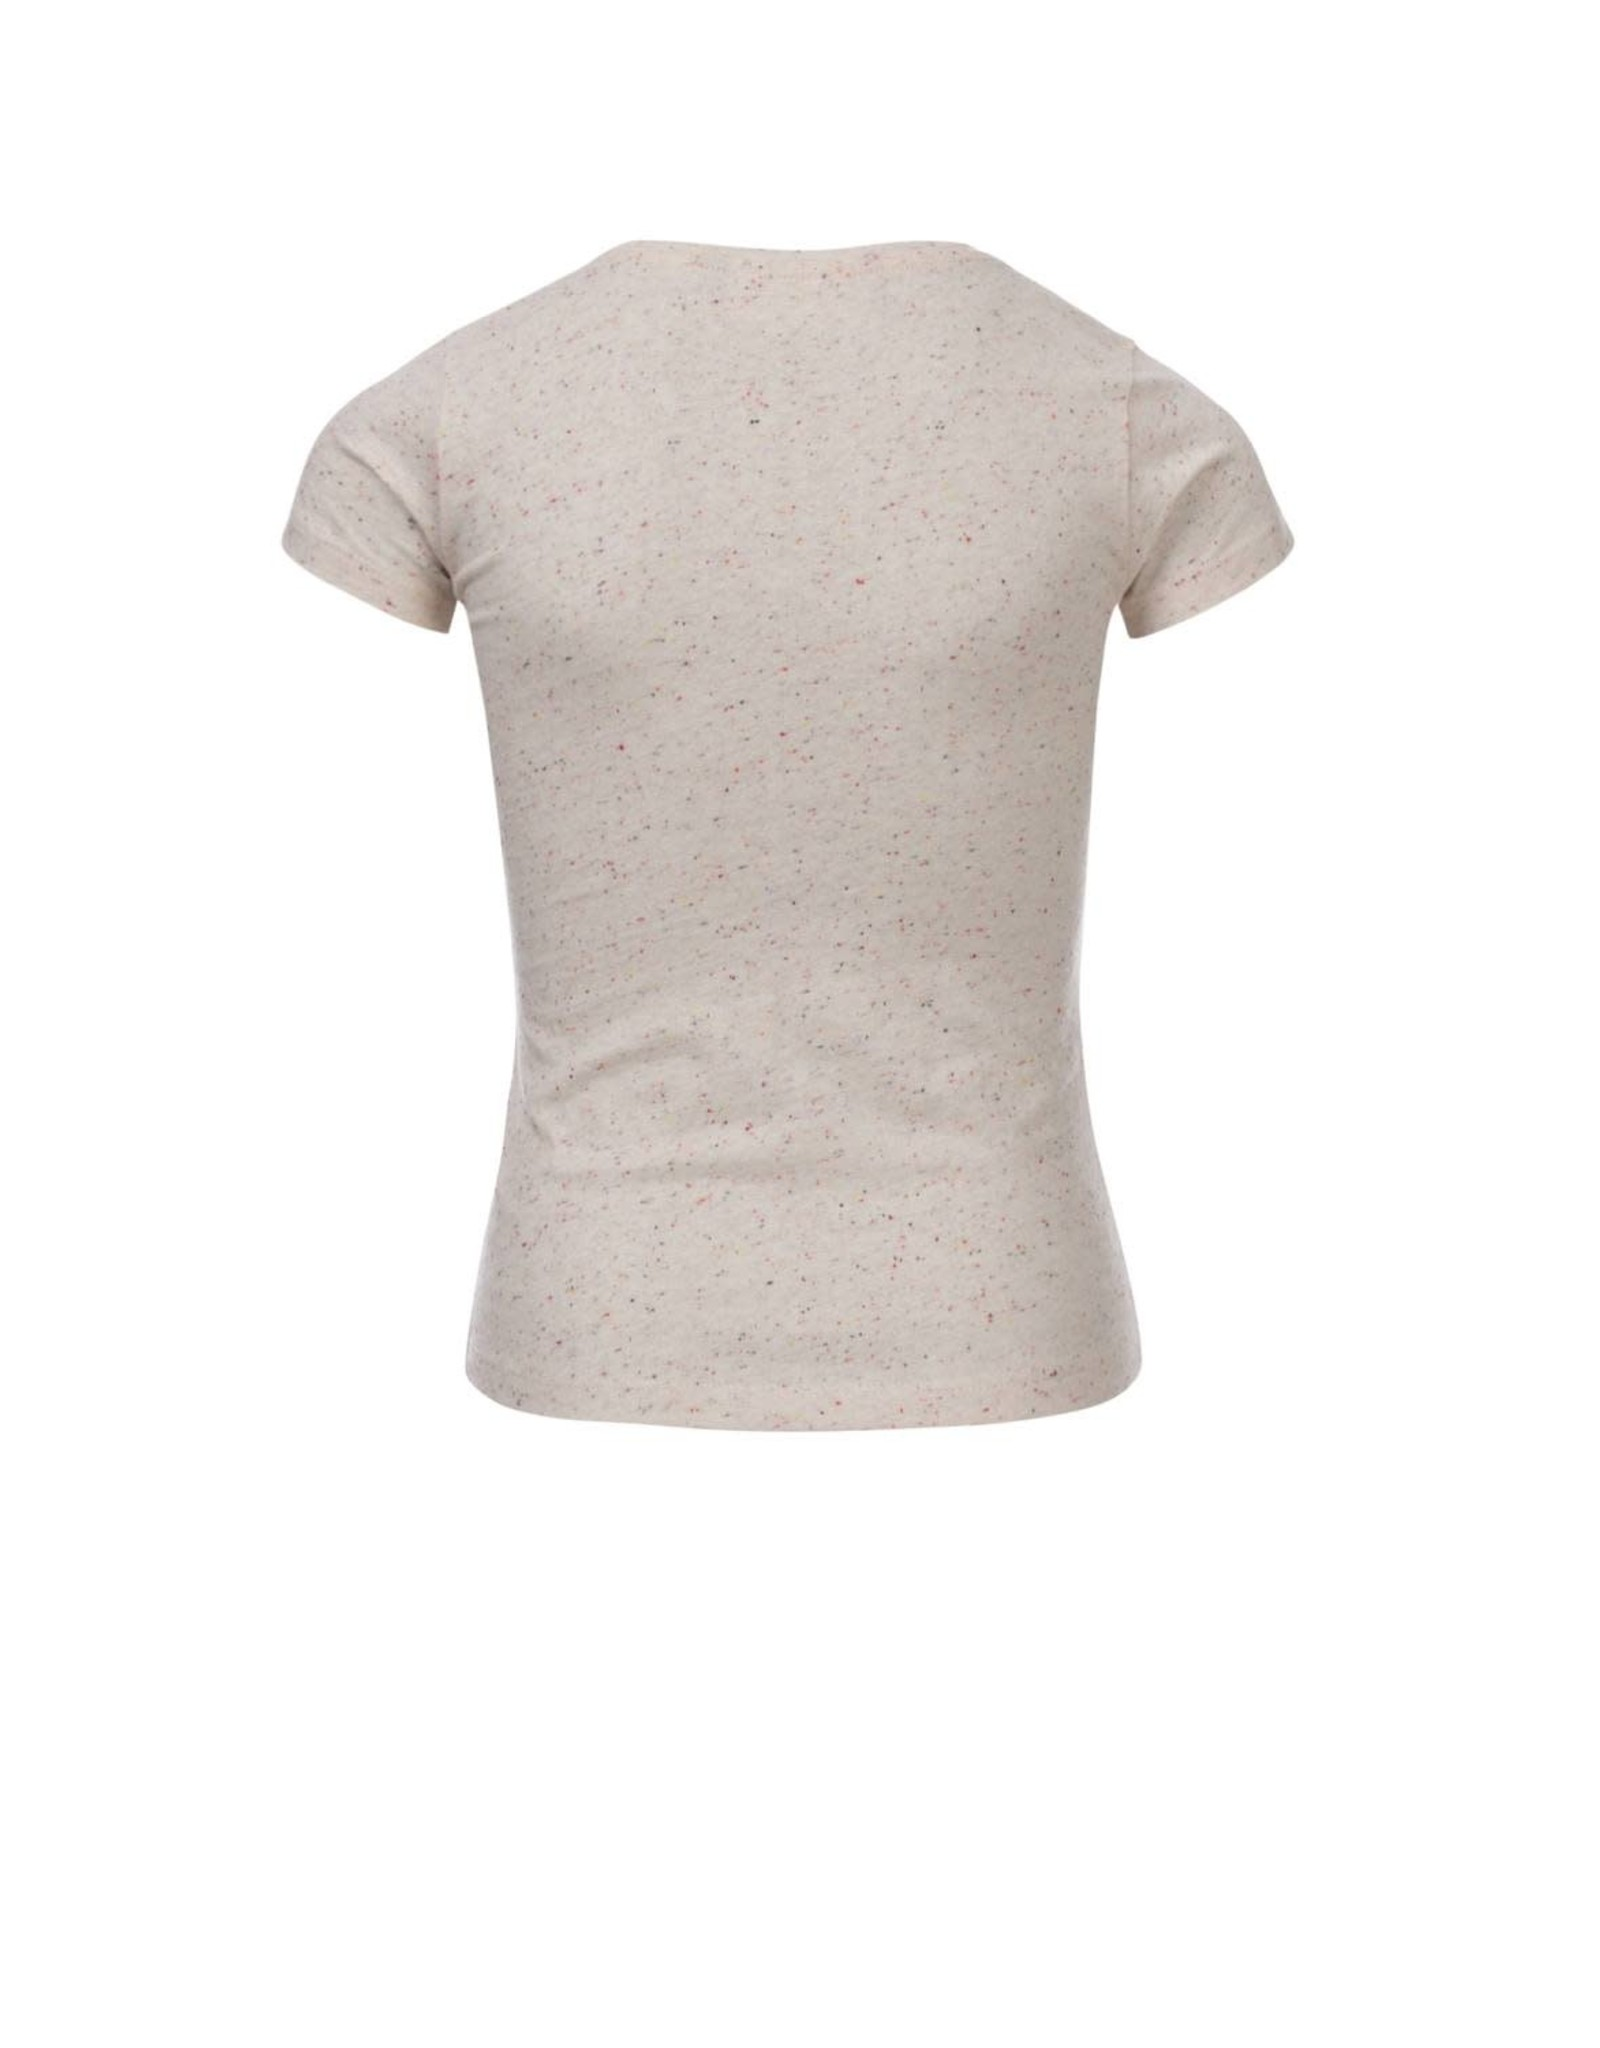 Looxs Girls T-shirt spikkel sand